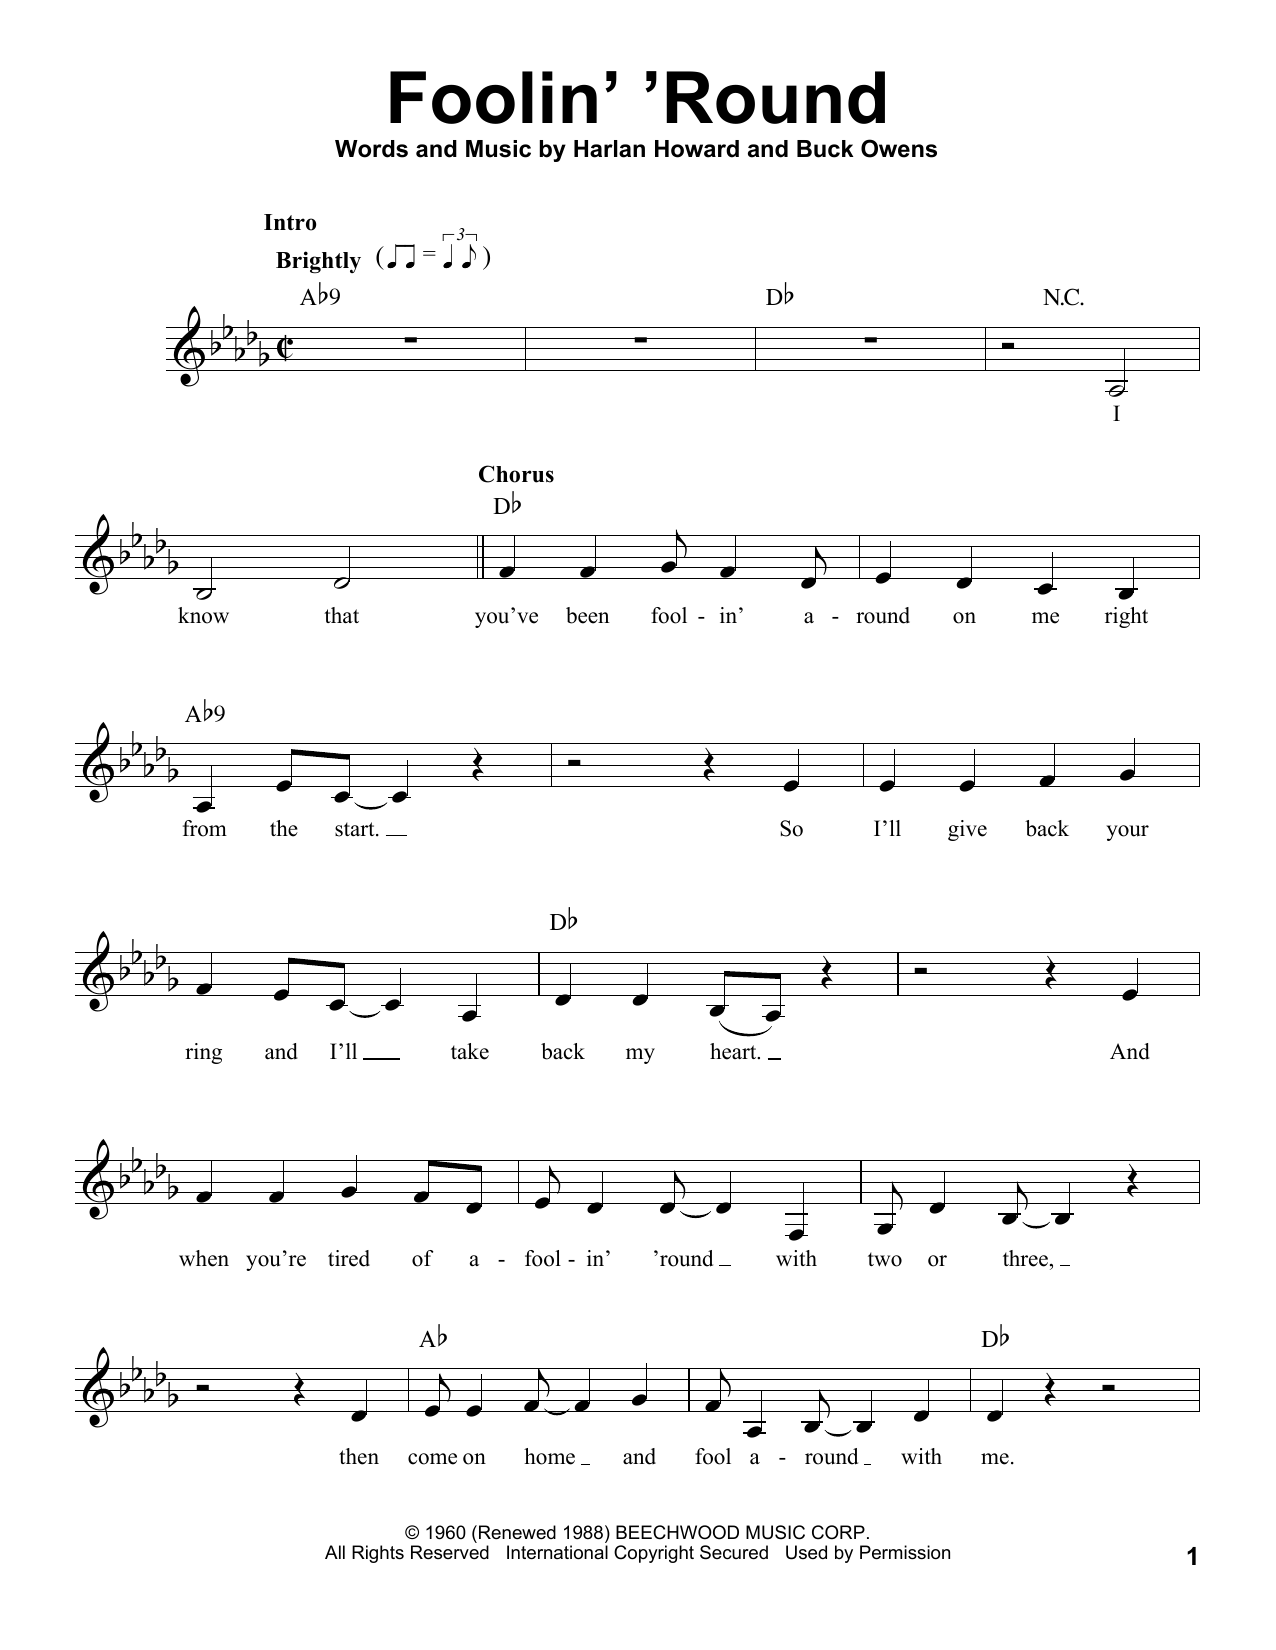 Foolin' 'Round Sheet Music